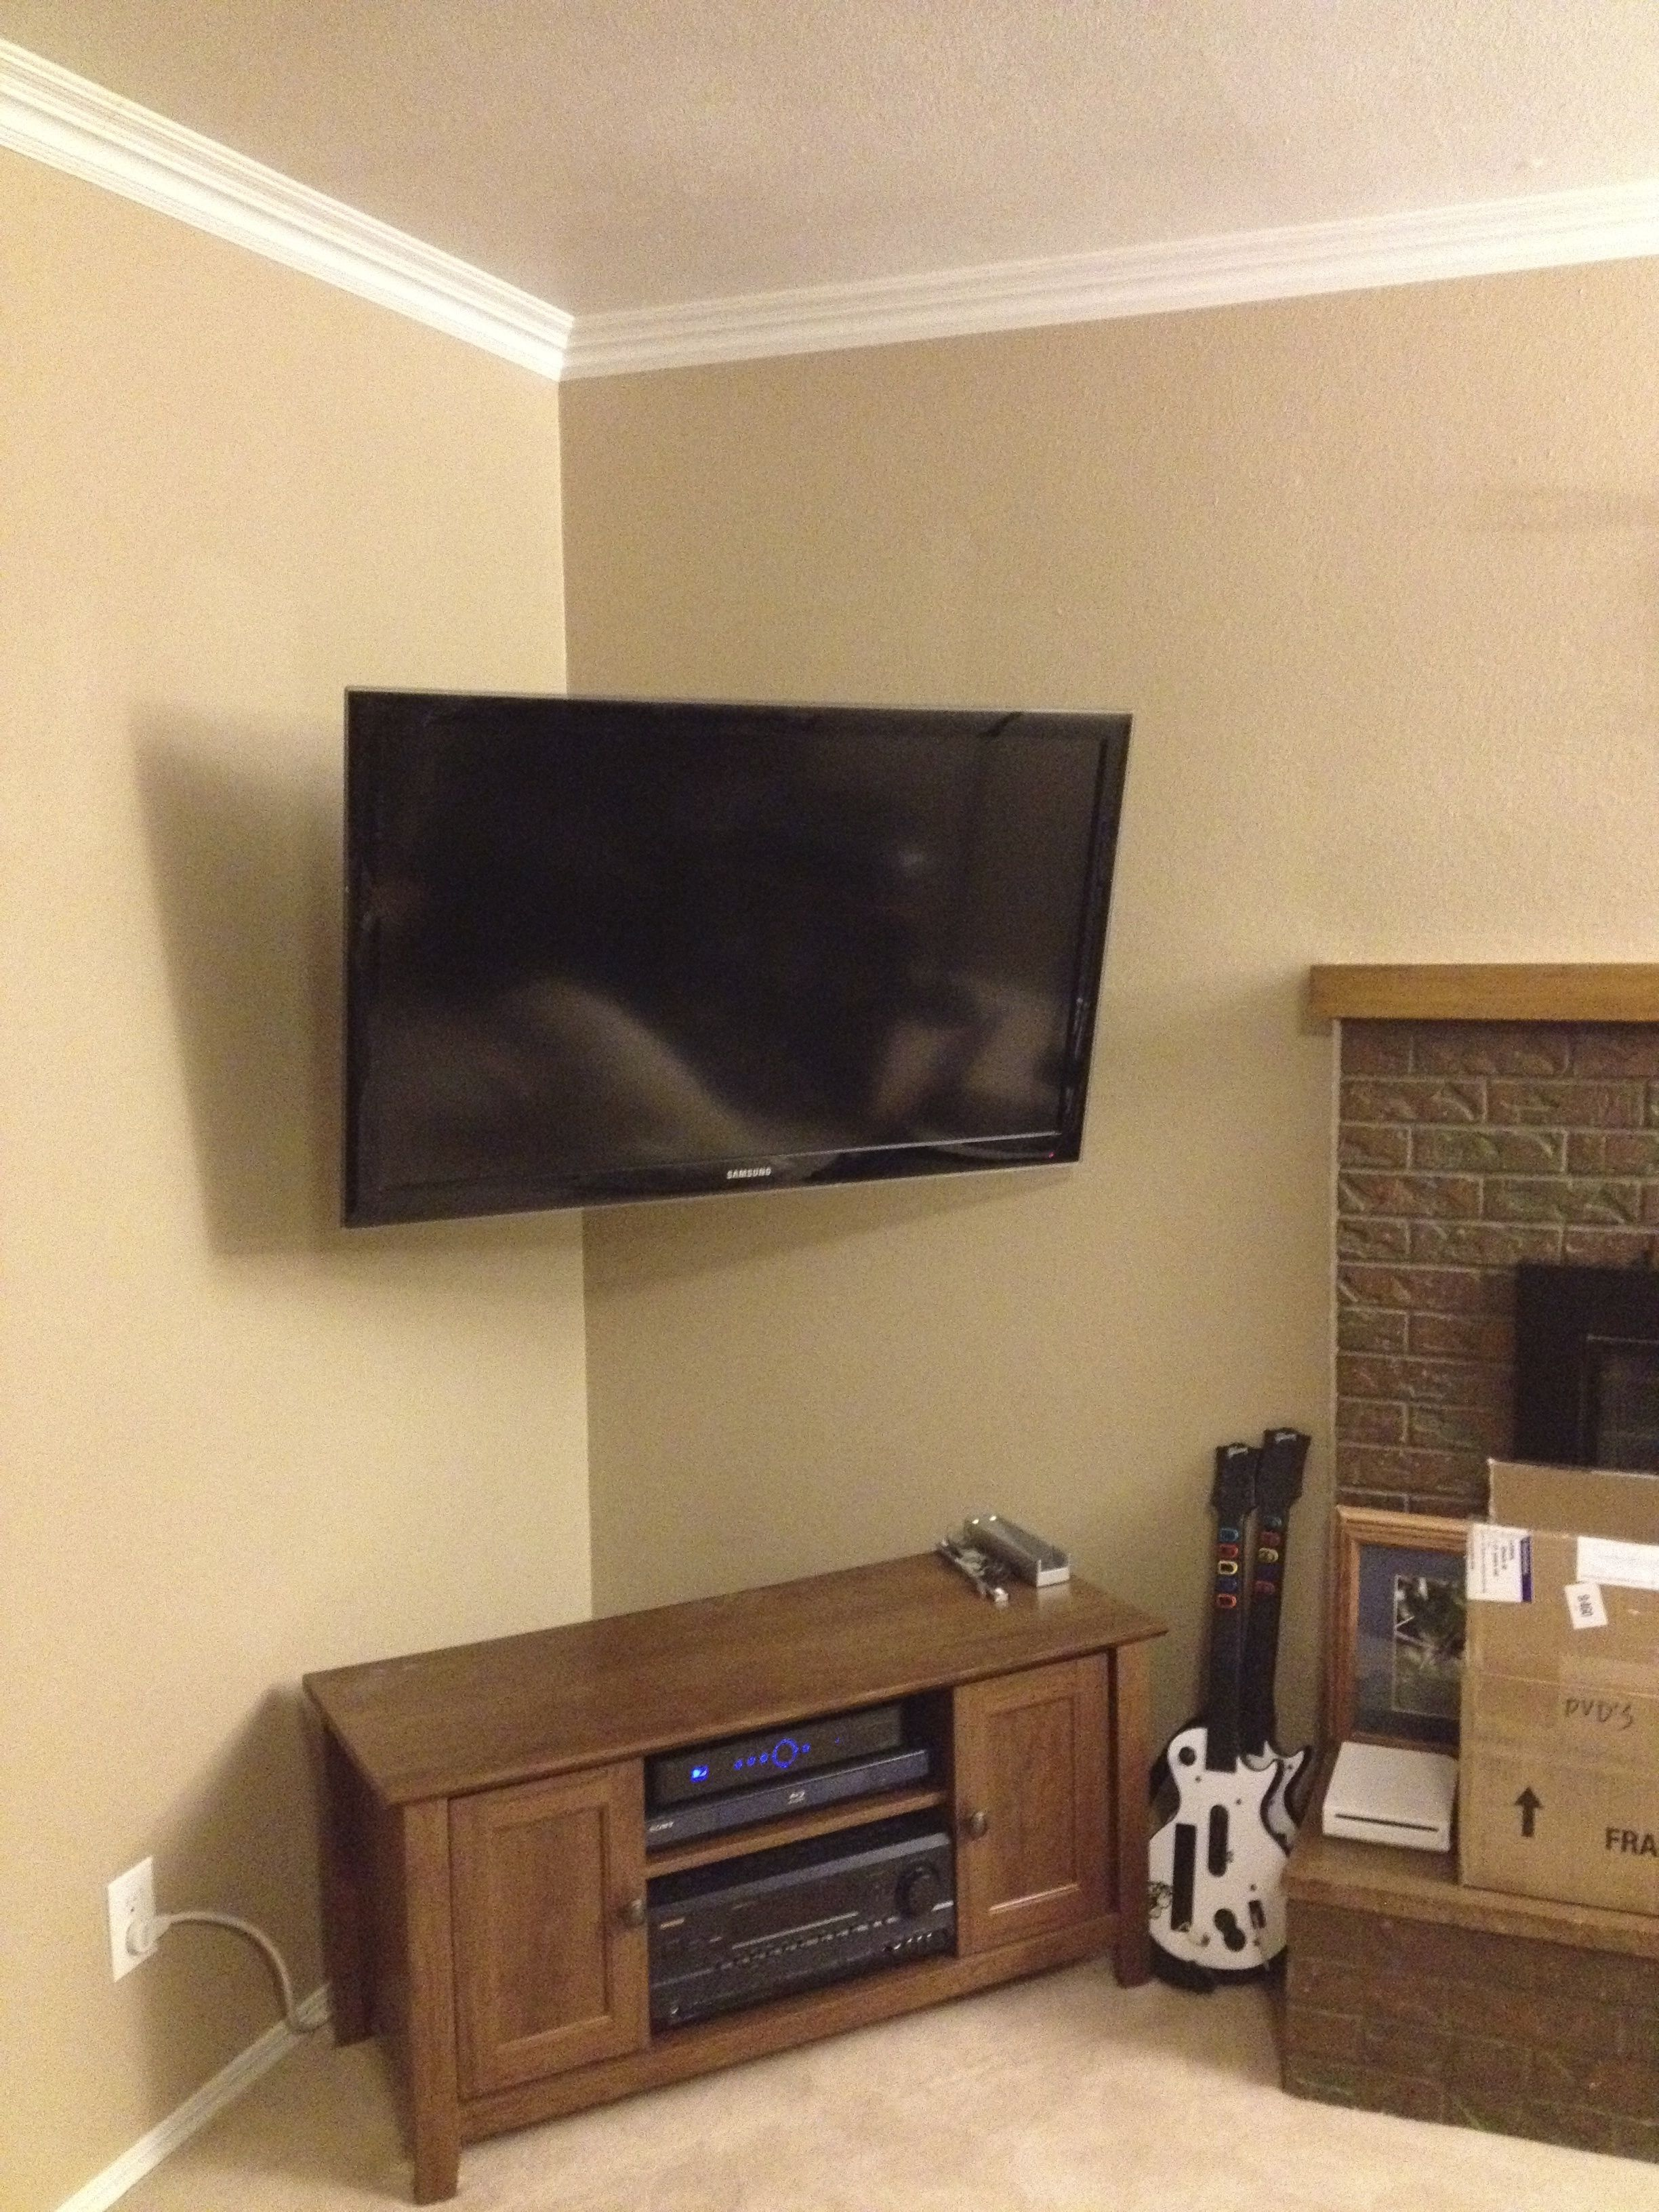 Corner Mounted TV With The Wires Hidden Adds So Much Space